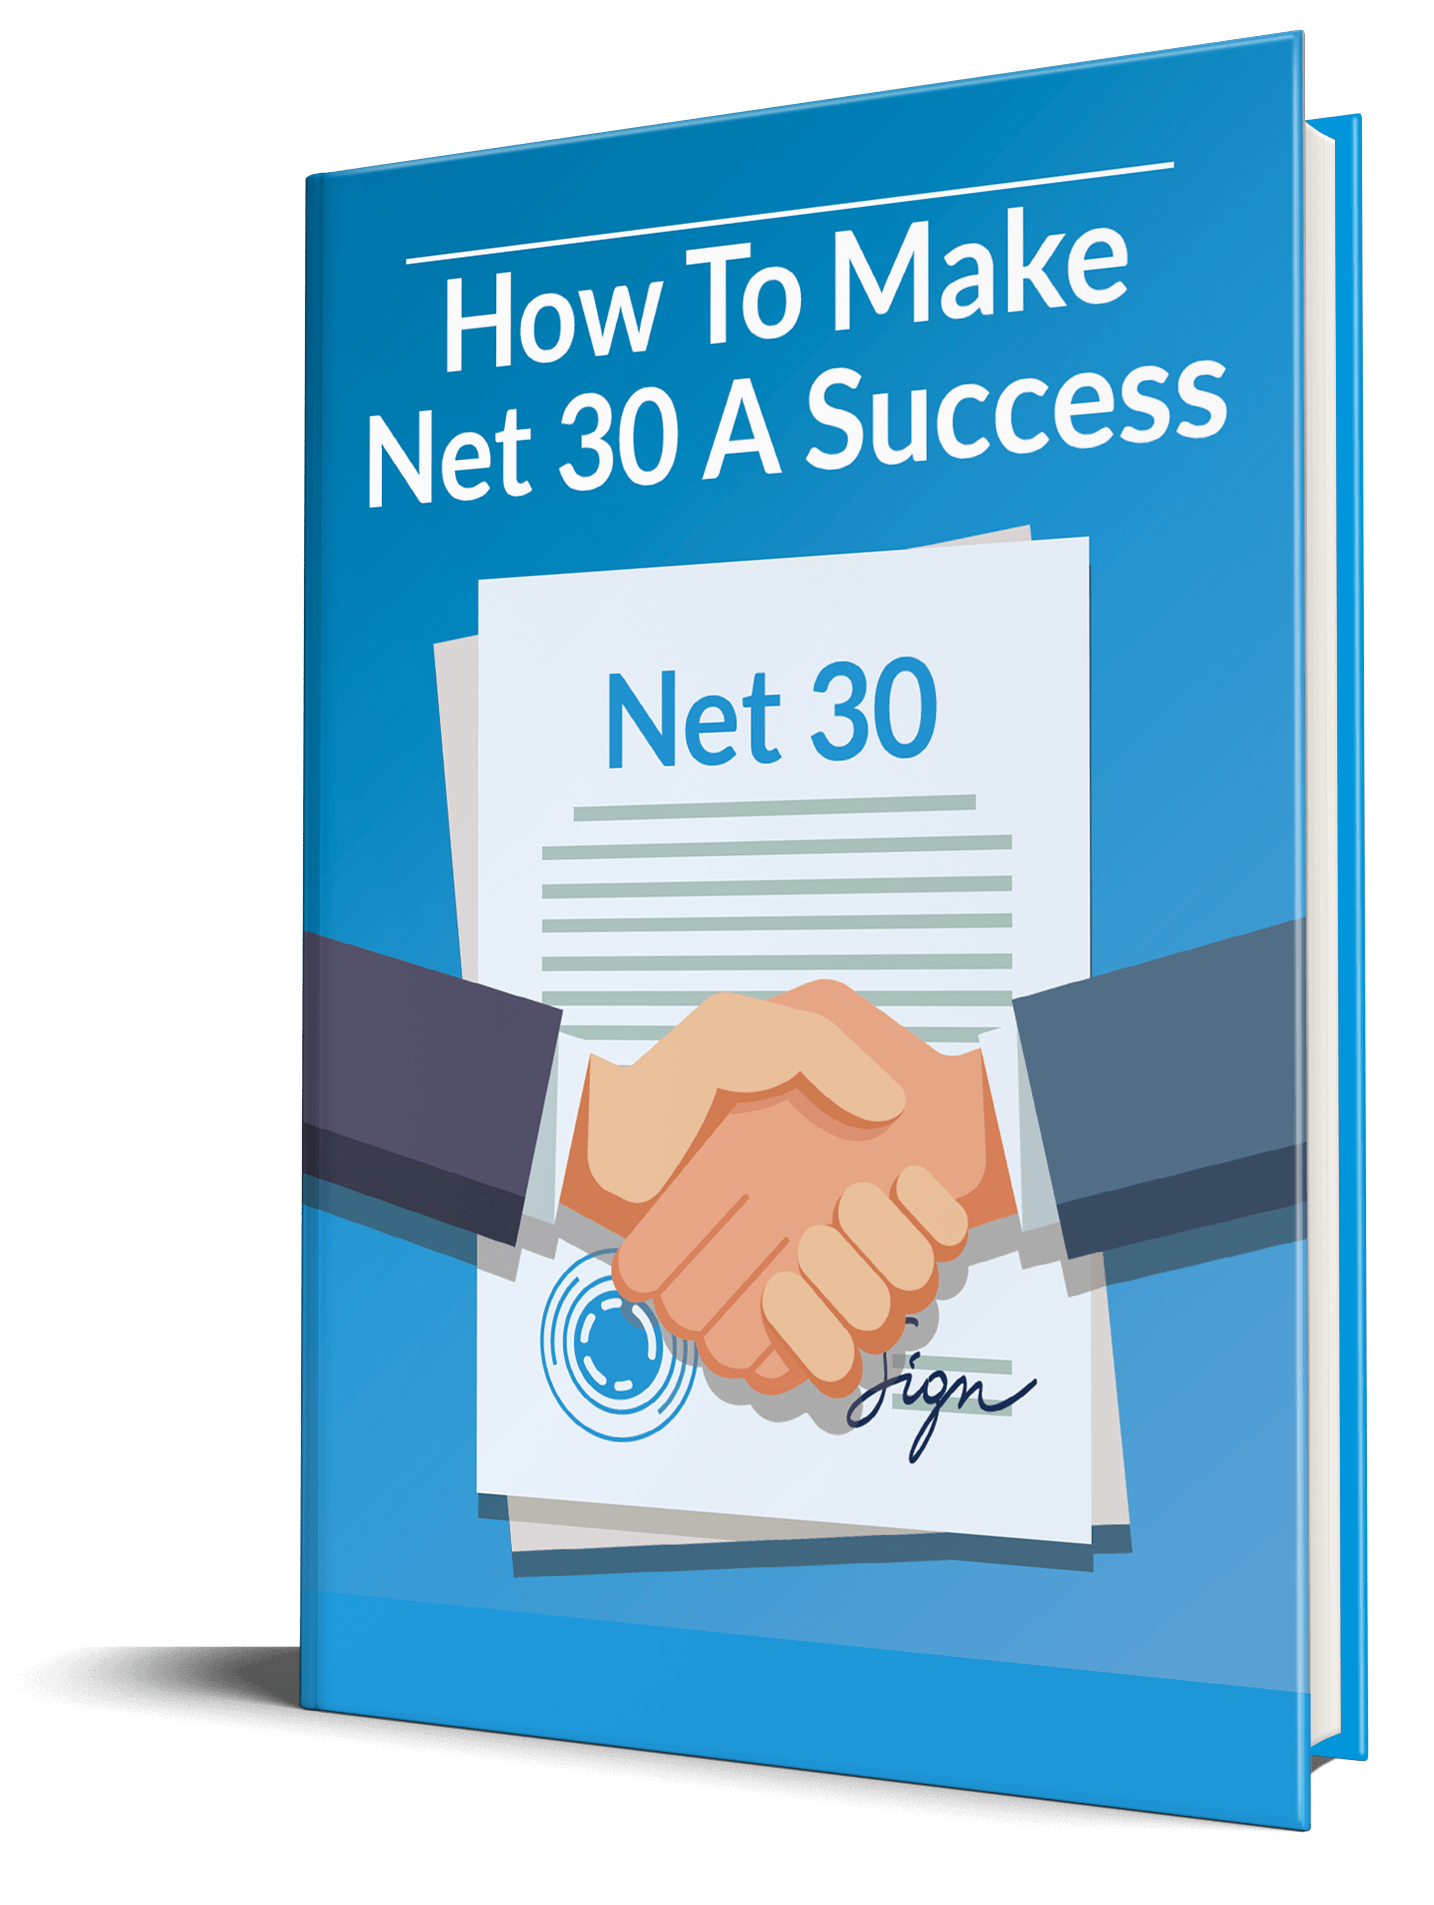 How To Make Net 30 A Success